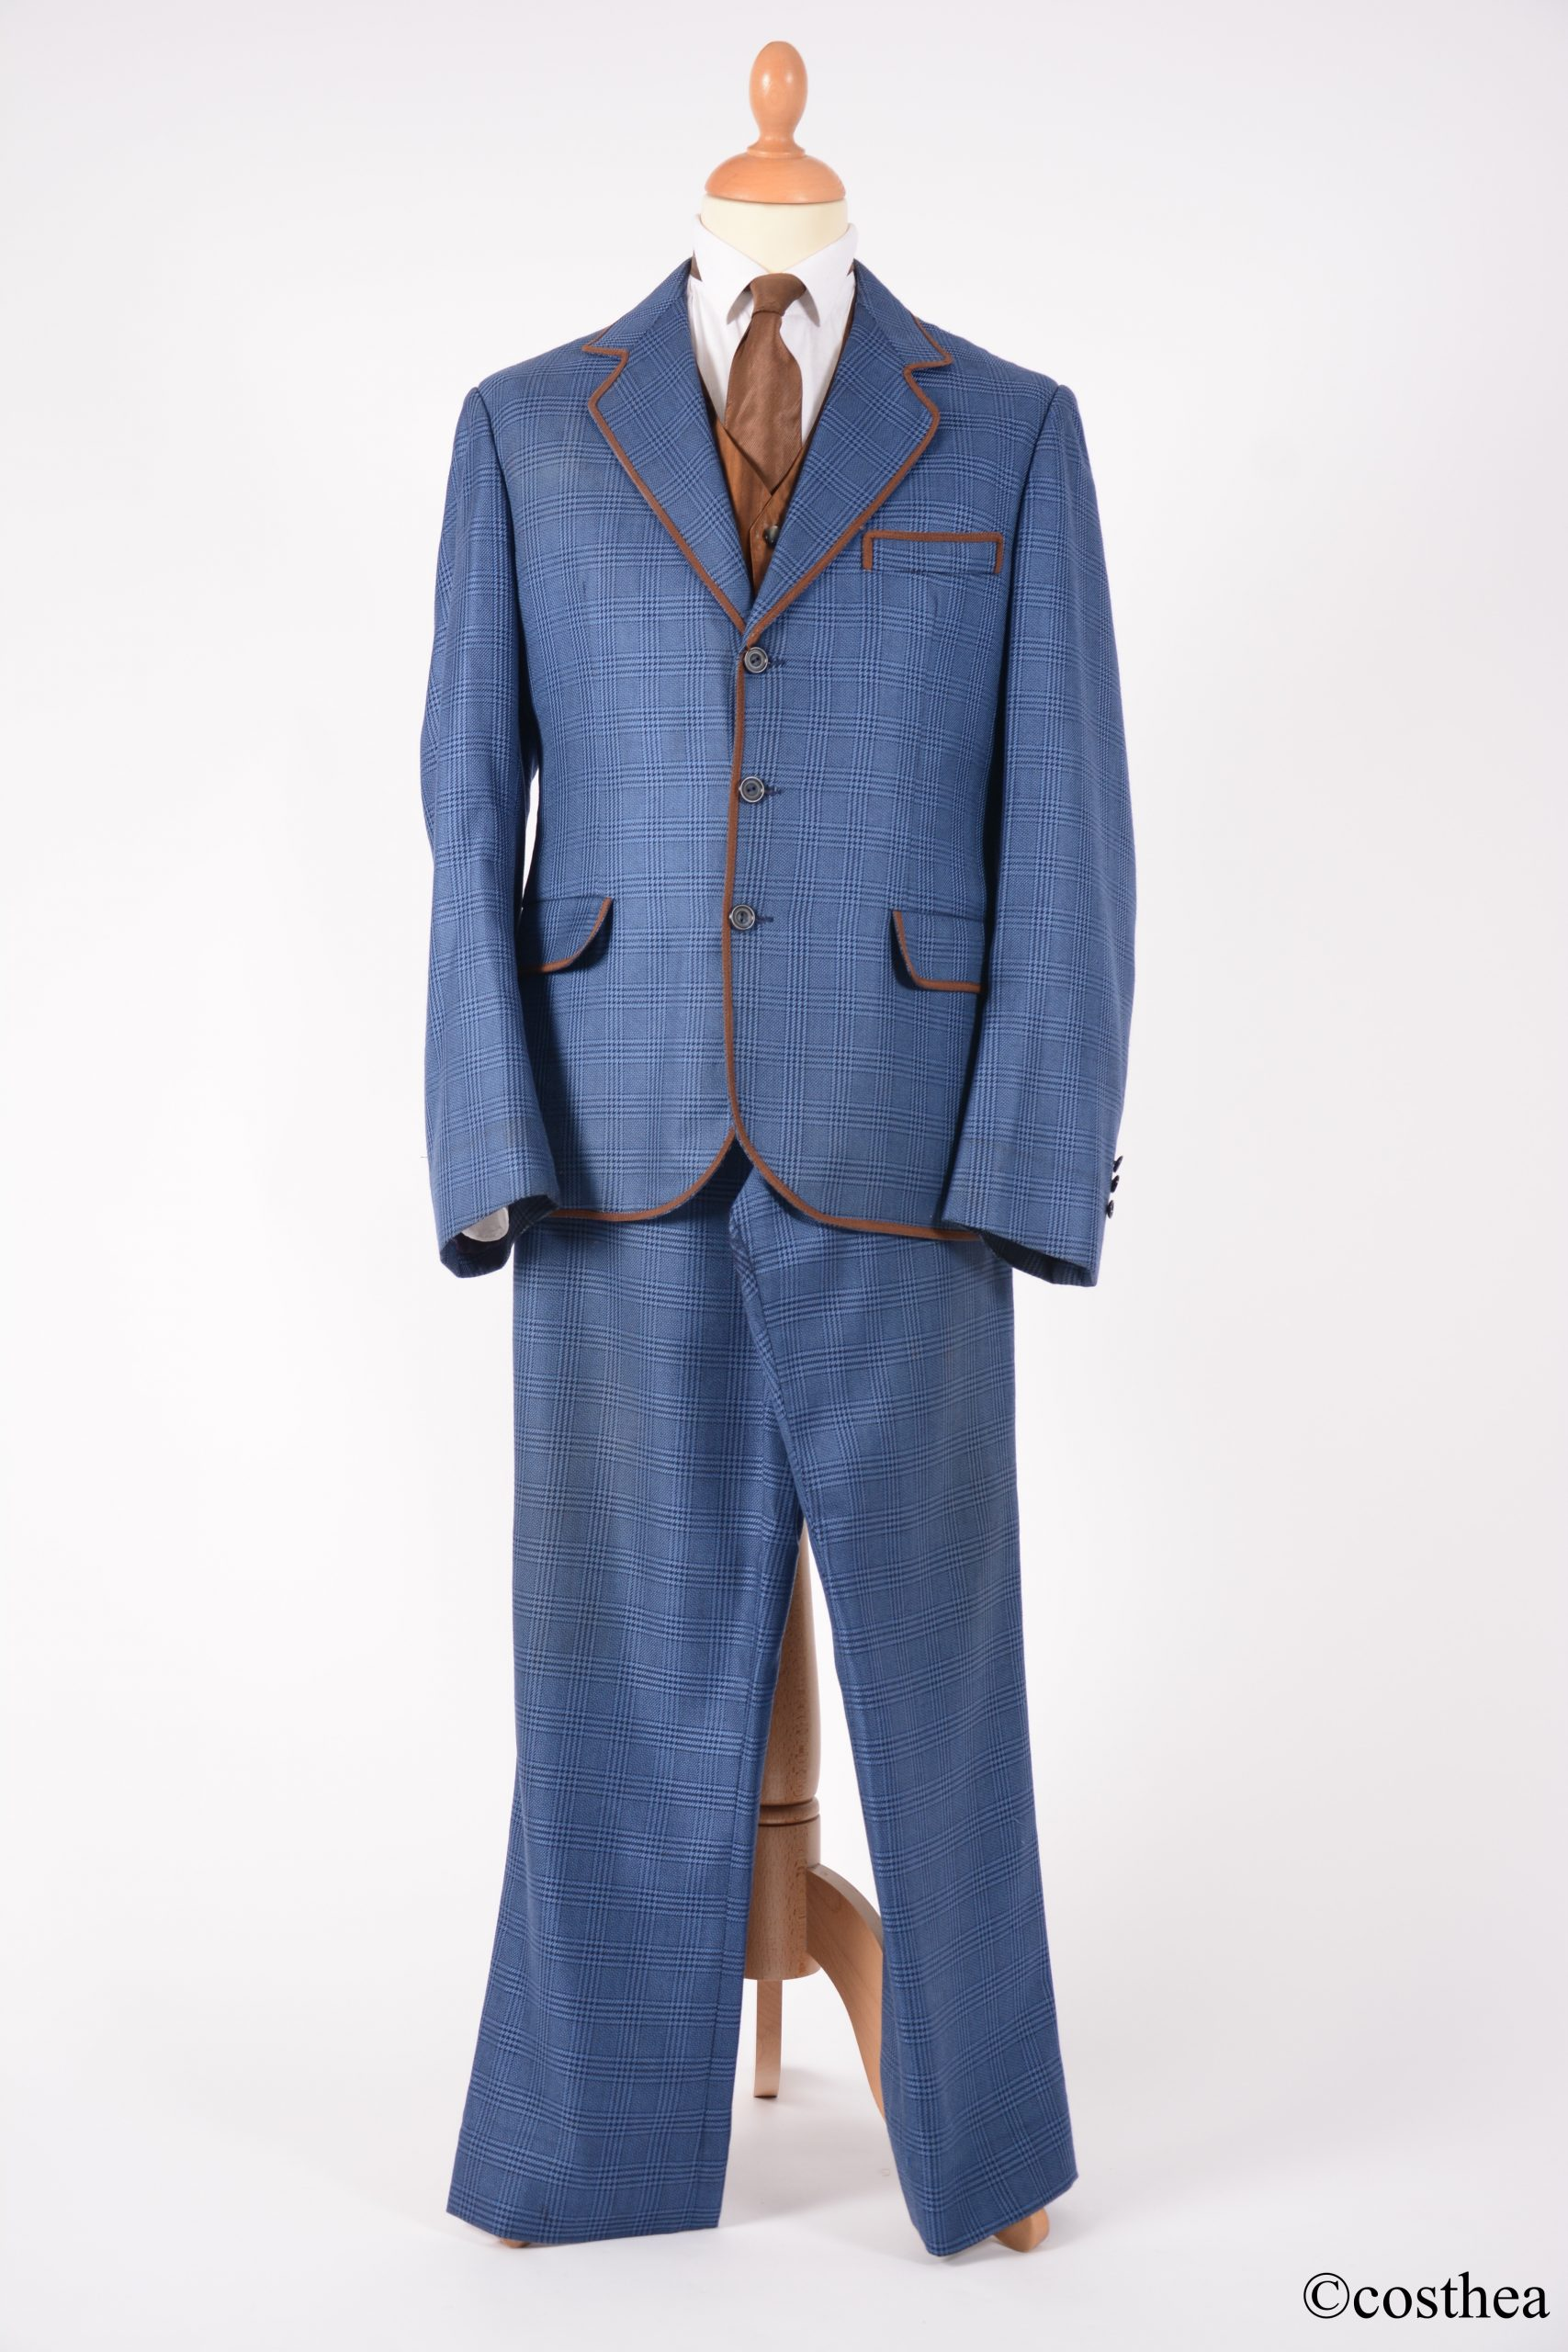 Costume Homme trois pièces stock Costhea (Monsieur Chasse)